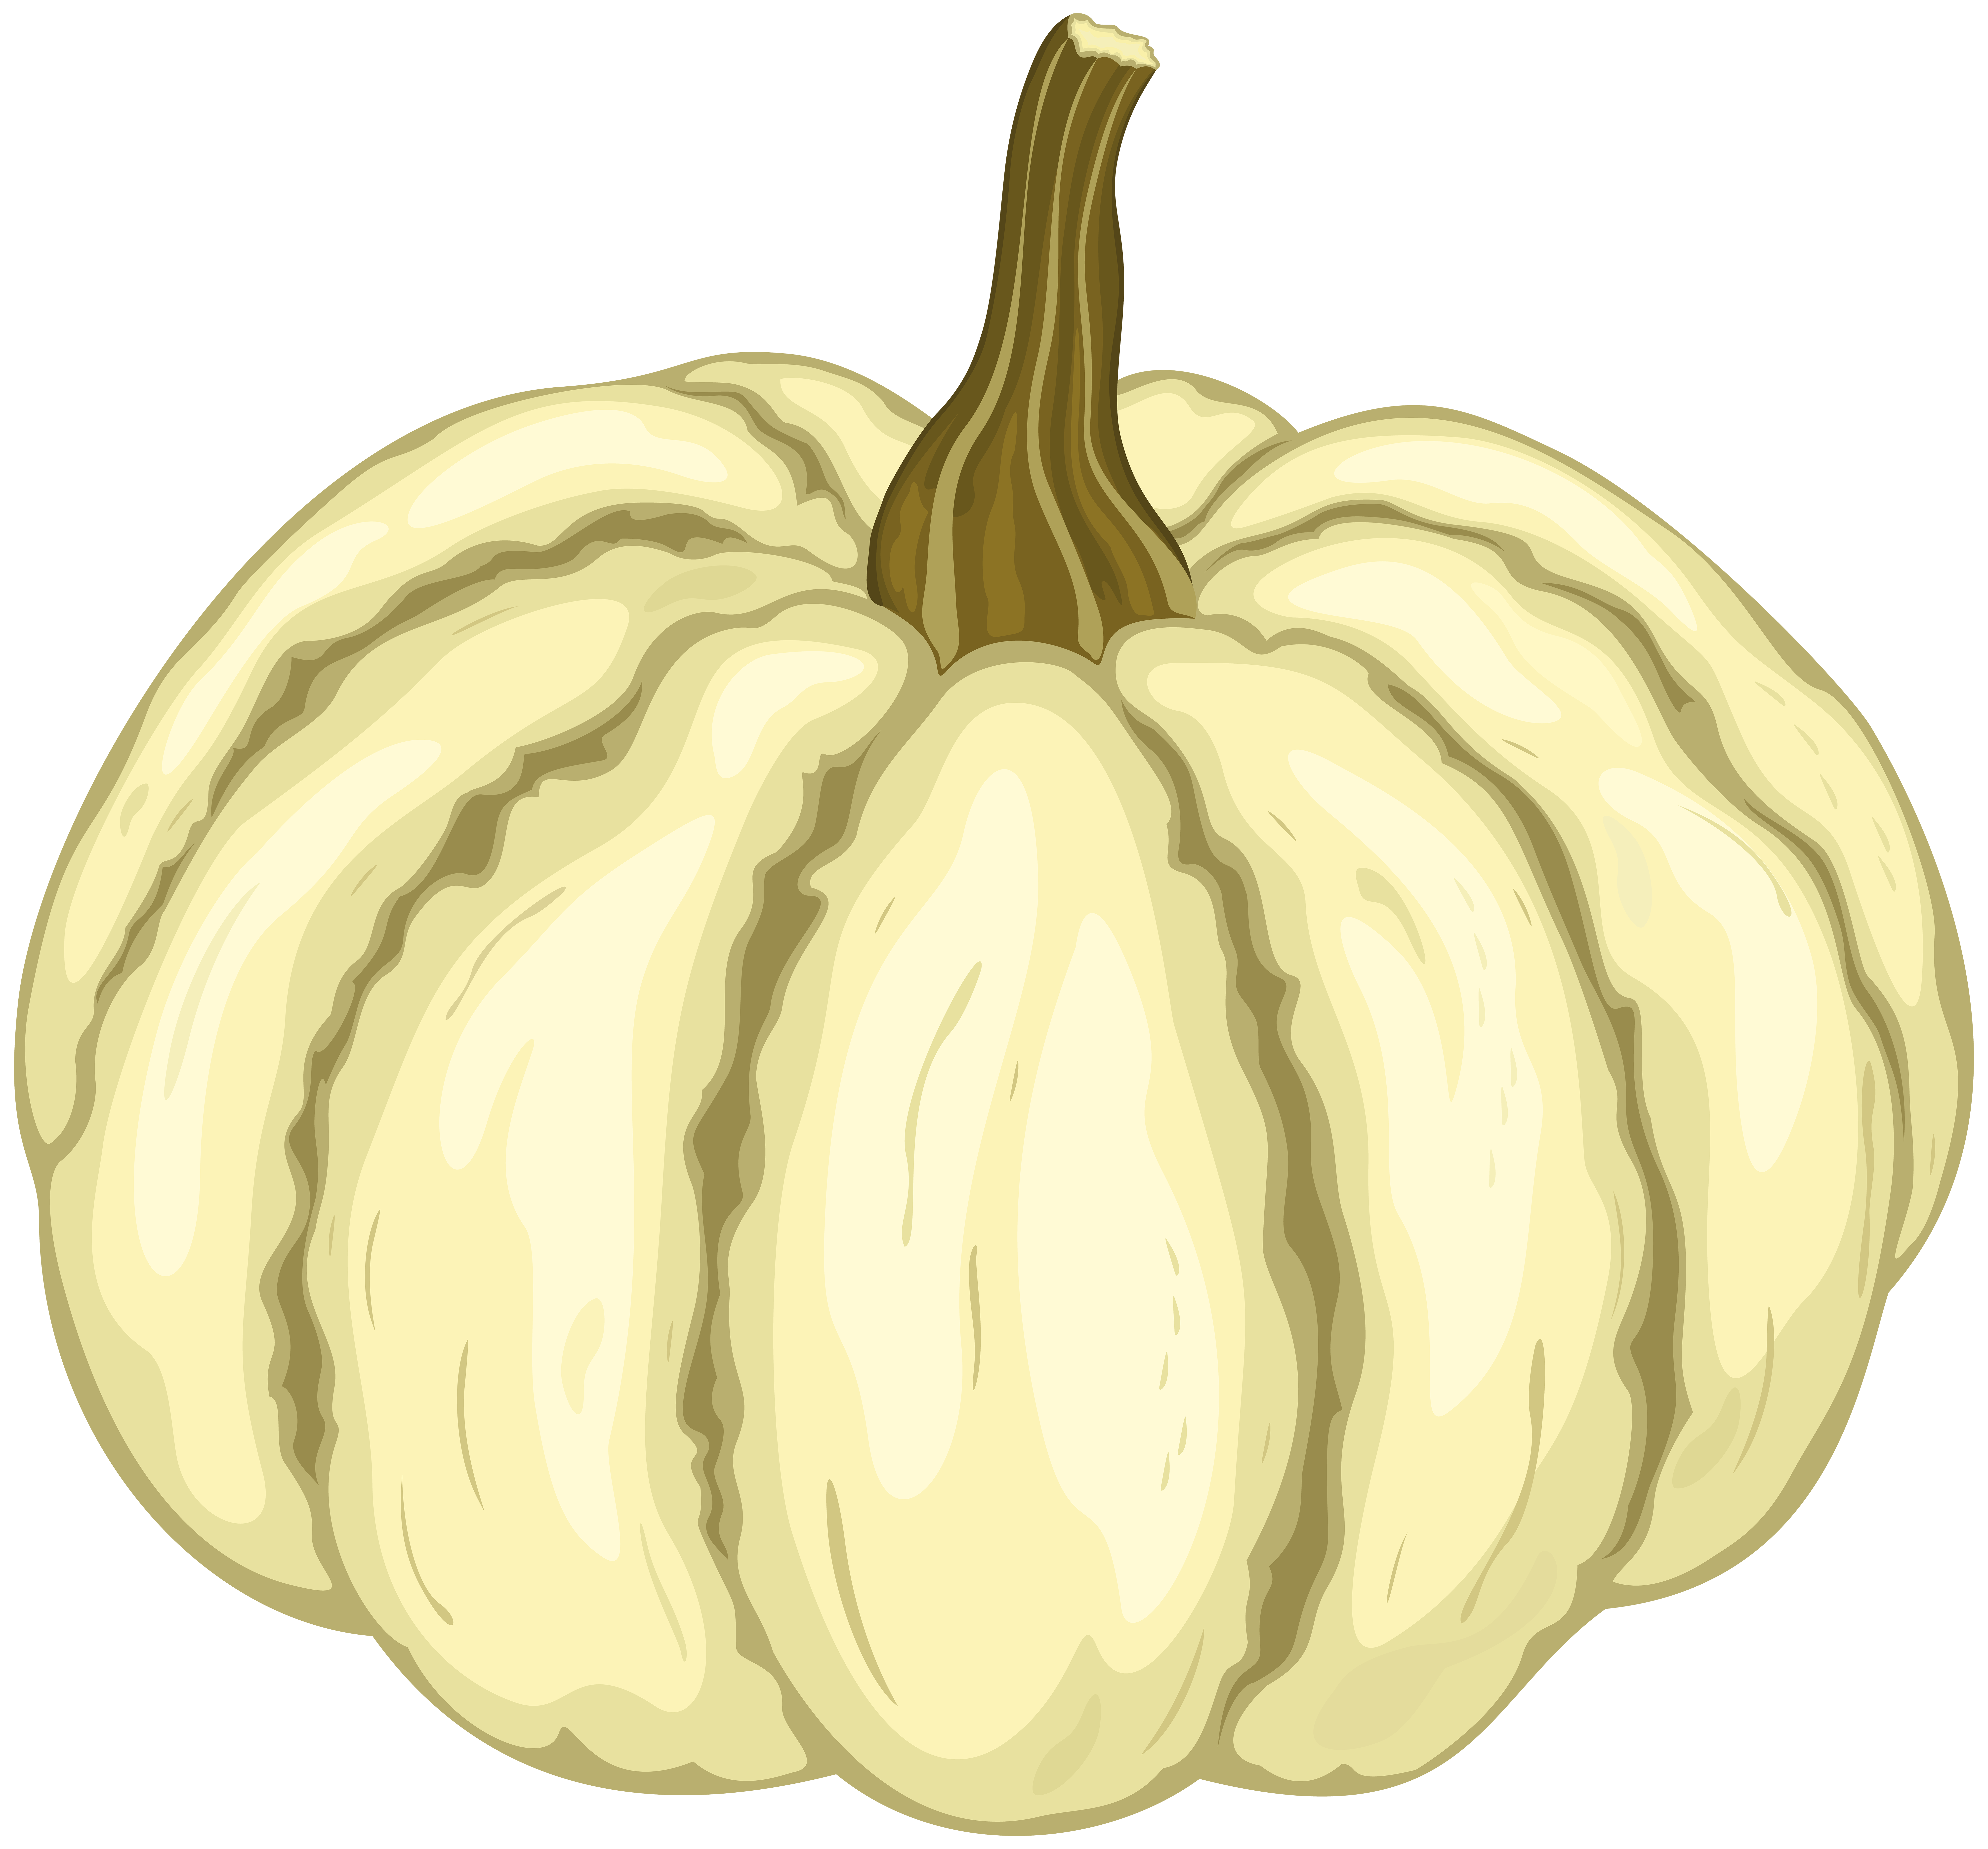 White pumpkin png. Clipart image gallery yopriceville